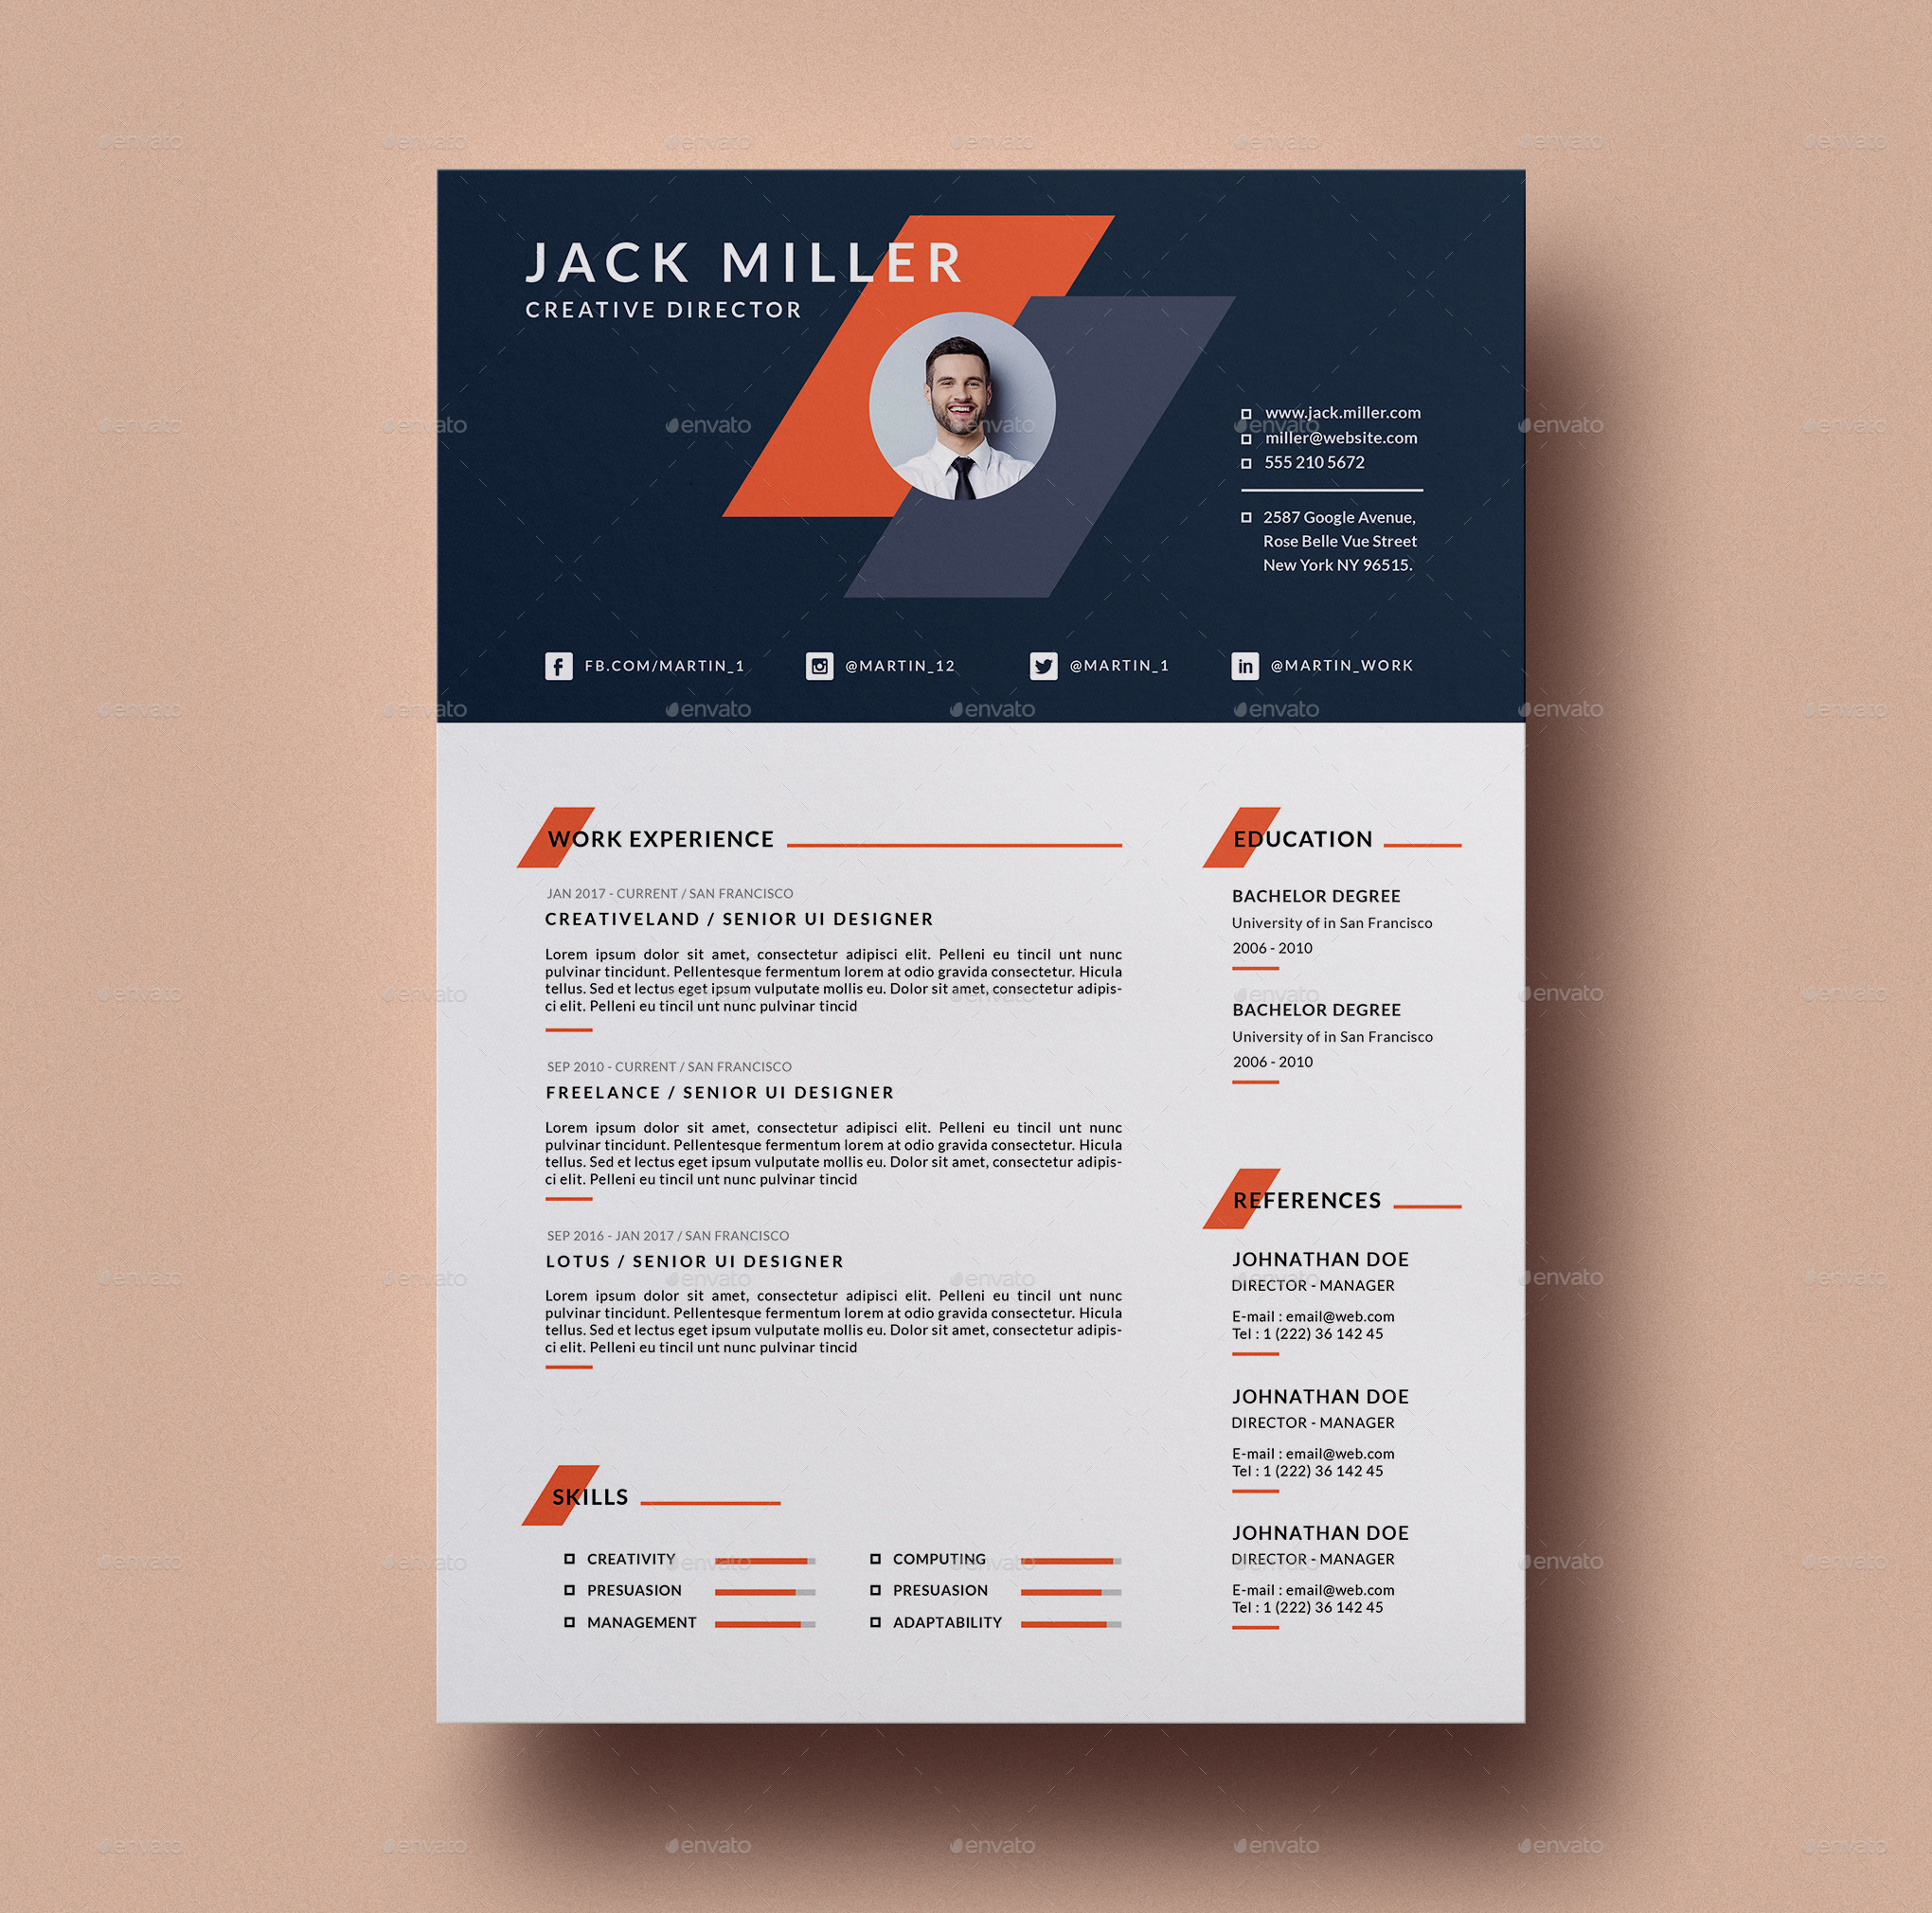 74+ FREE PSD CV/ RESUME TEMPLATES + COVER LETTERS TO